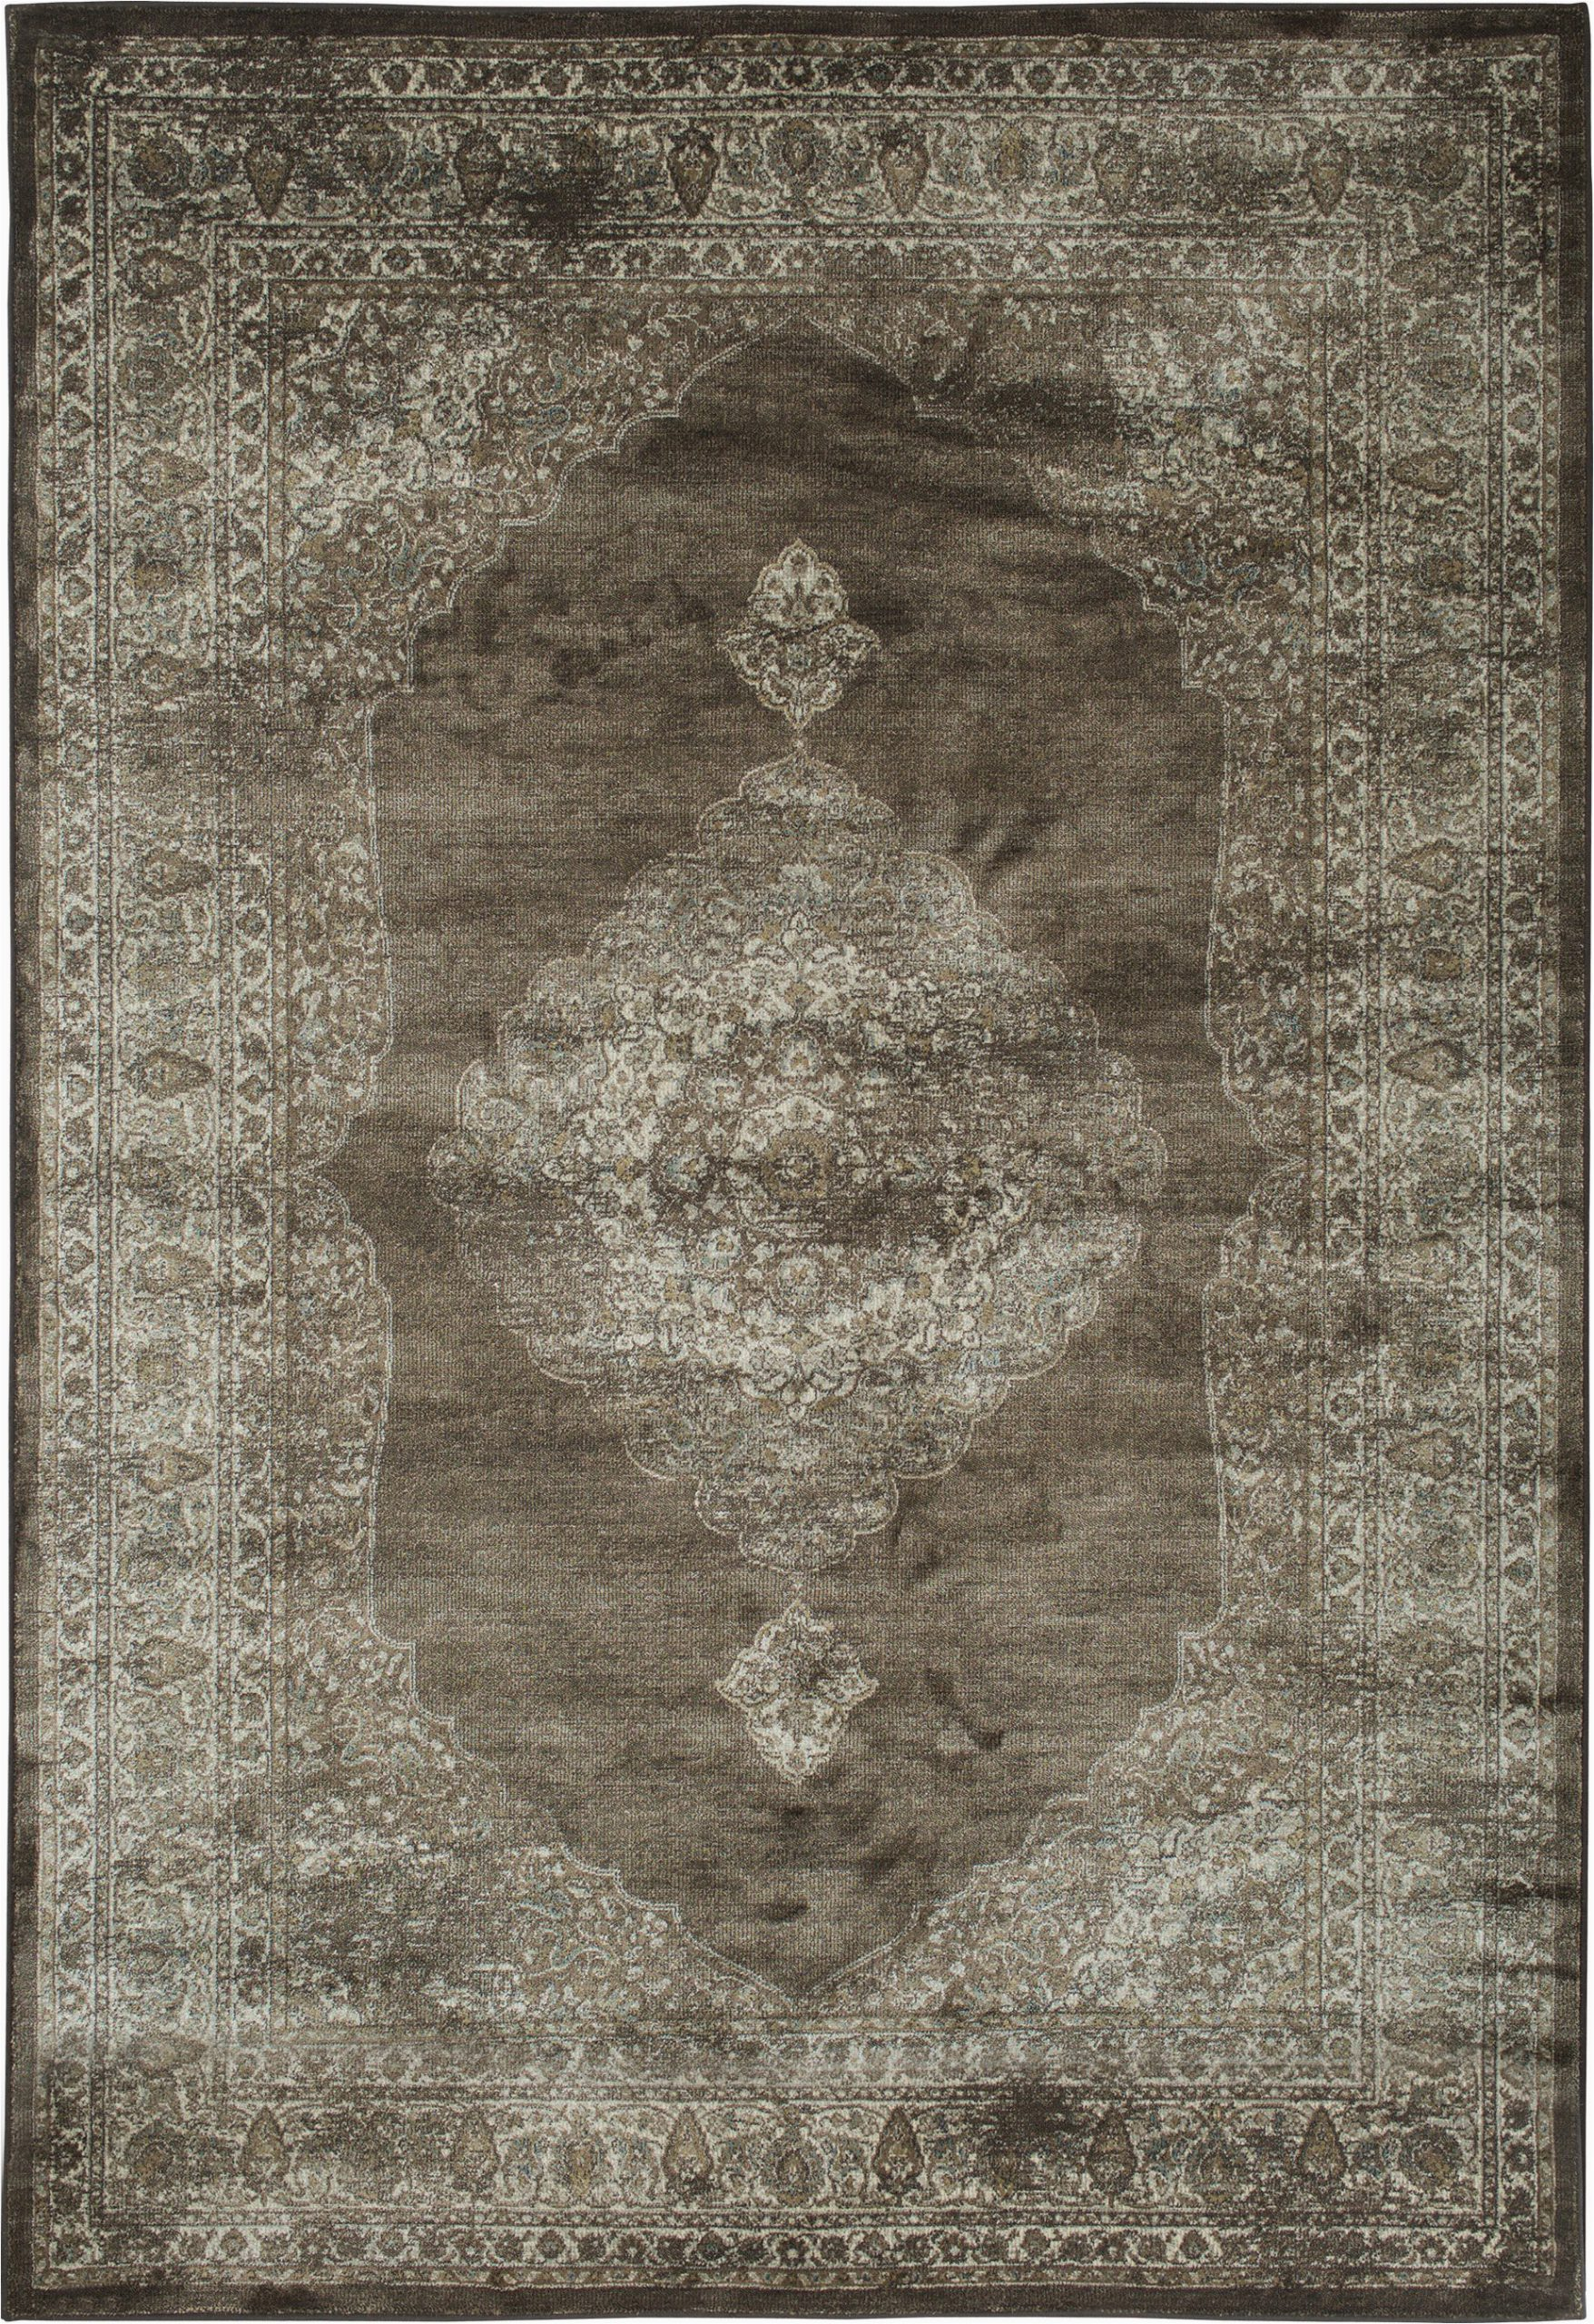 Bed Bath and Beyond area Rugs 5×8 Sams International5 X 8 Medium Brown and Beige area Rug